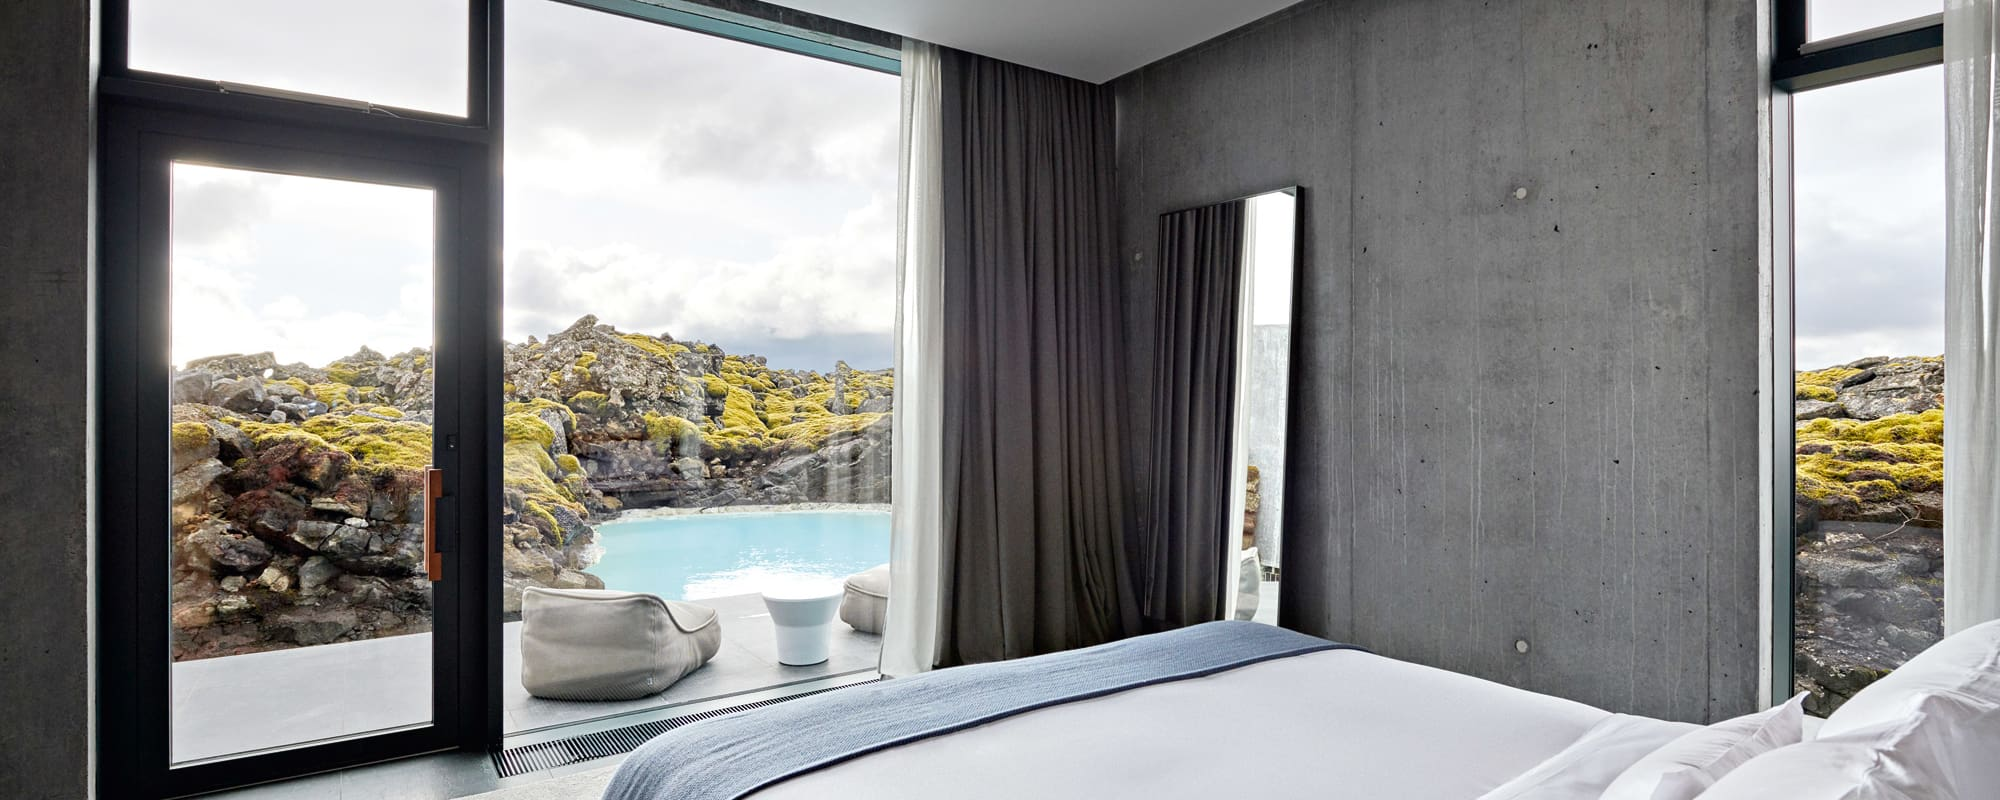 Hotel, The Retreat at Blue Lagoon, Island, Grindavík,